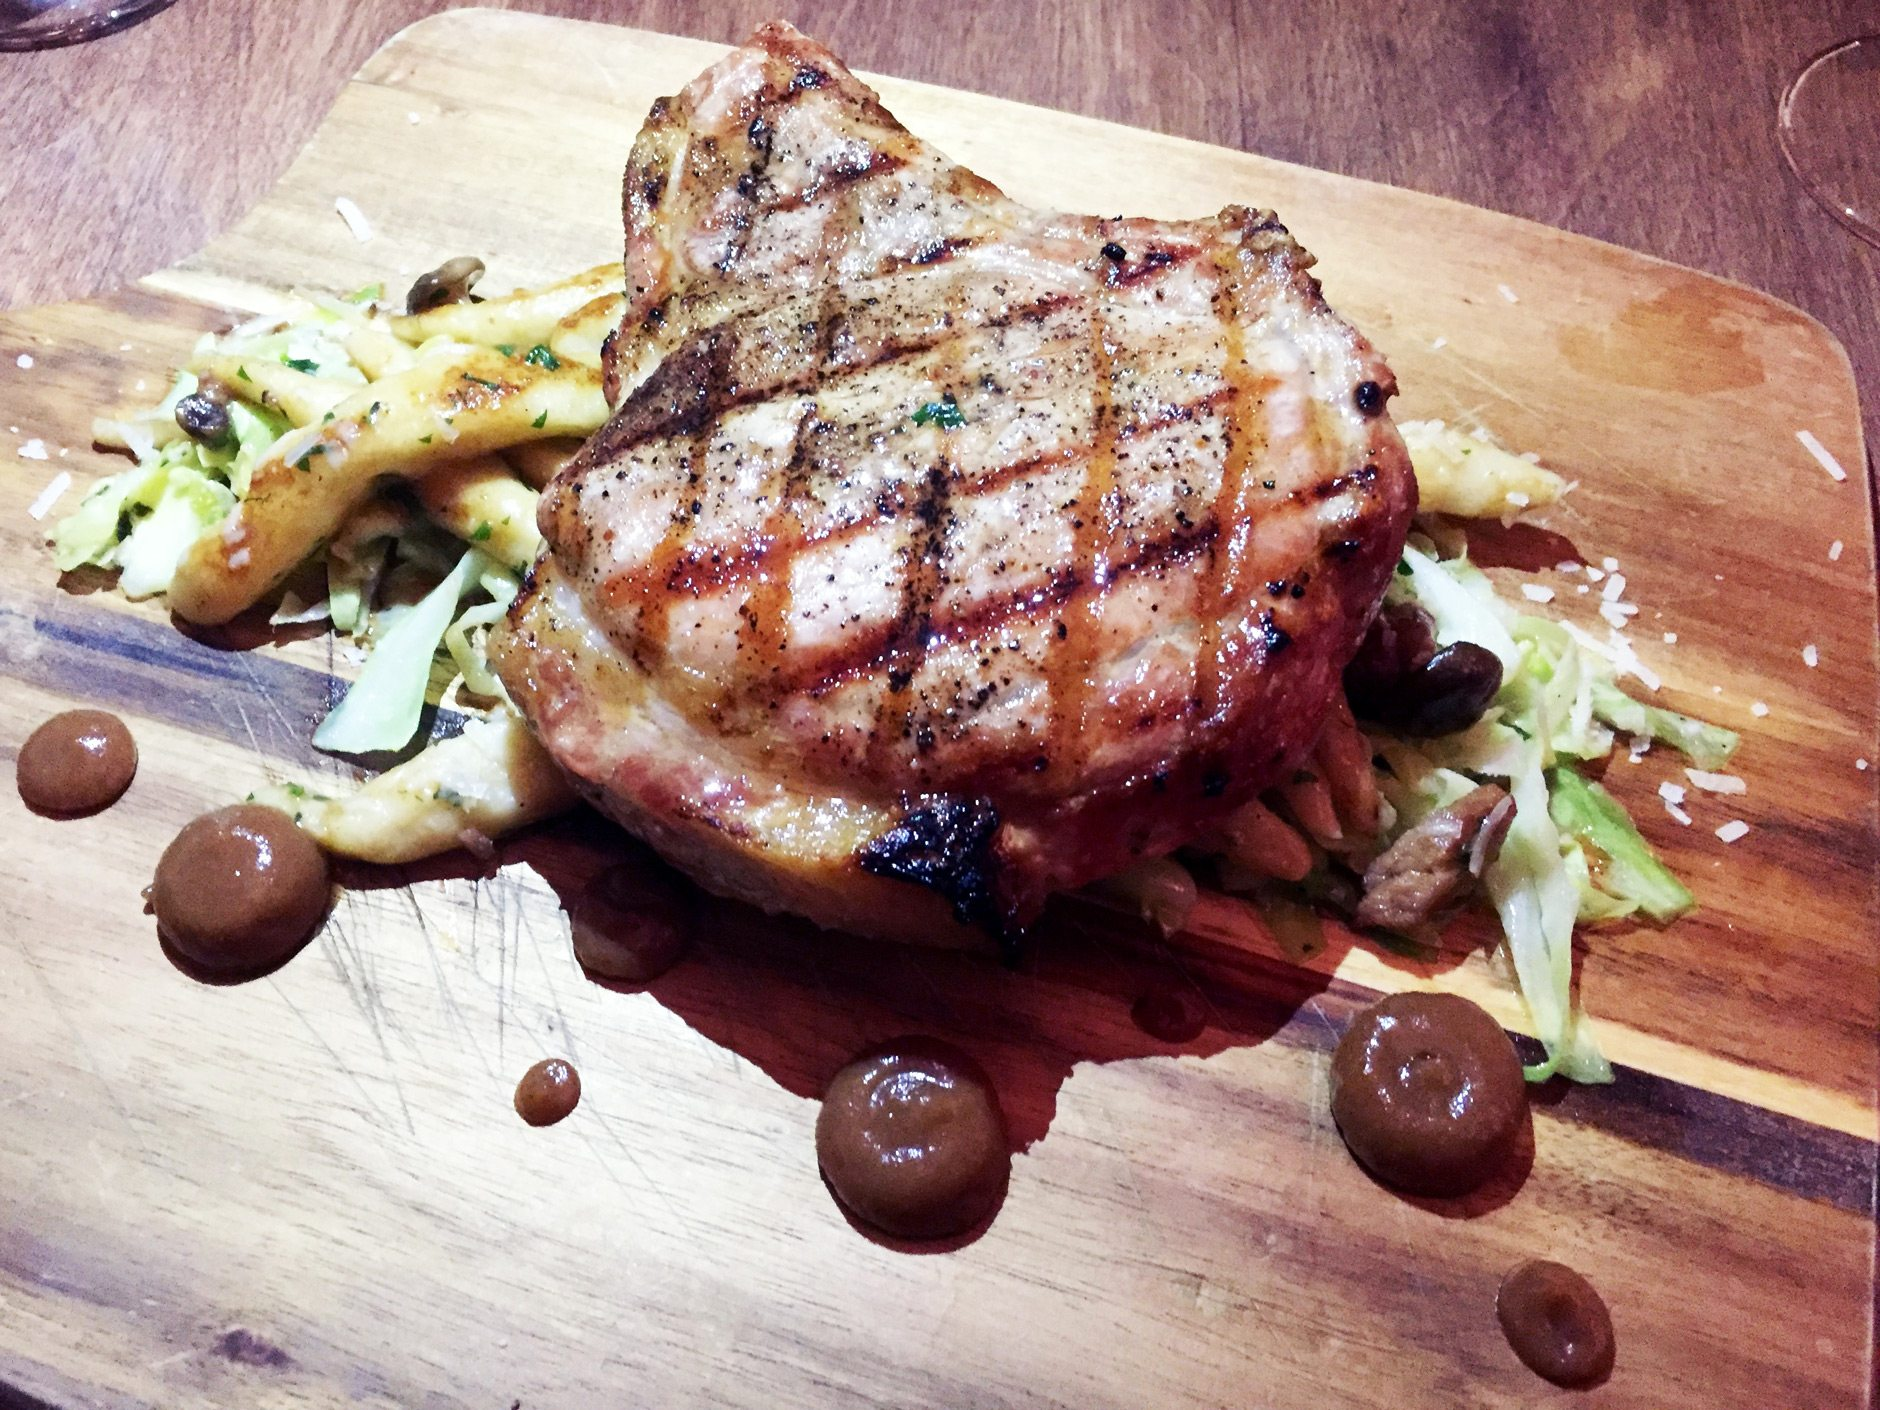 Grilled pork chop, which sat heavily on a bed of herbed schnupfnudel, with beech mushrooms and lightly sautéed cabbage